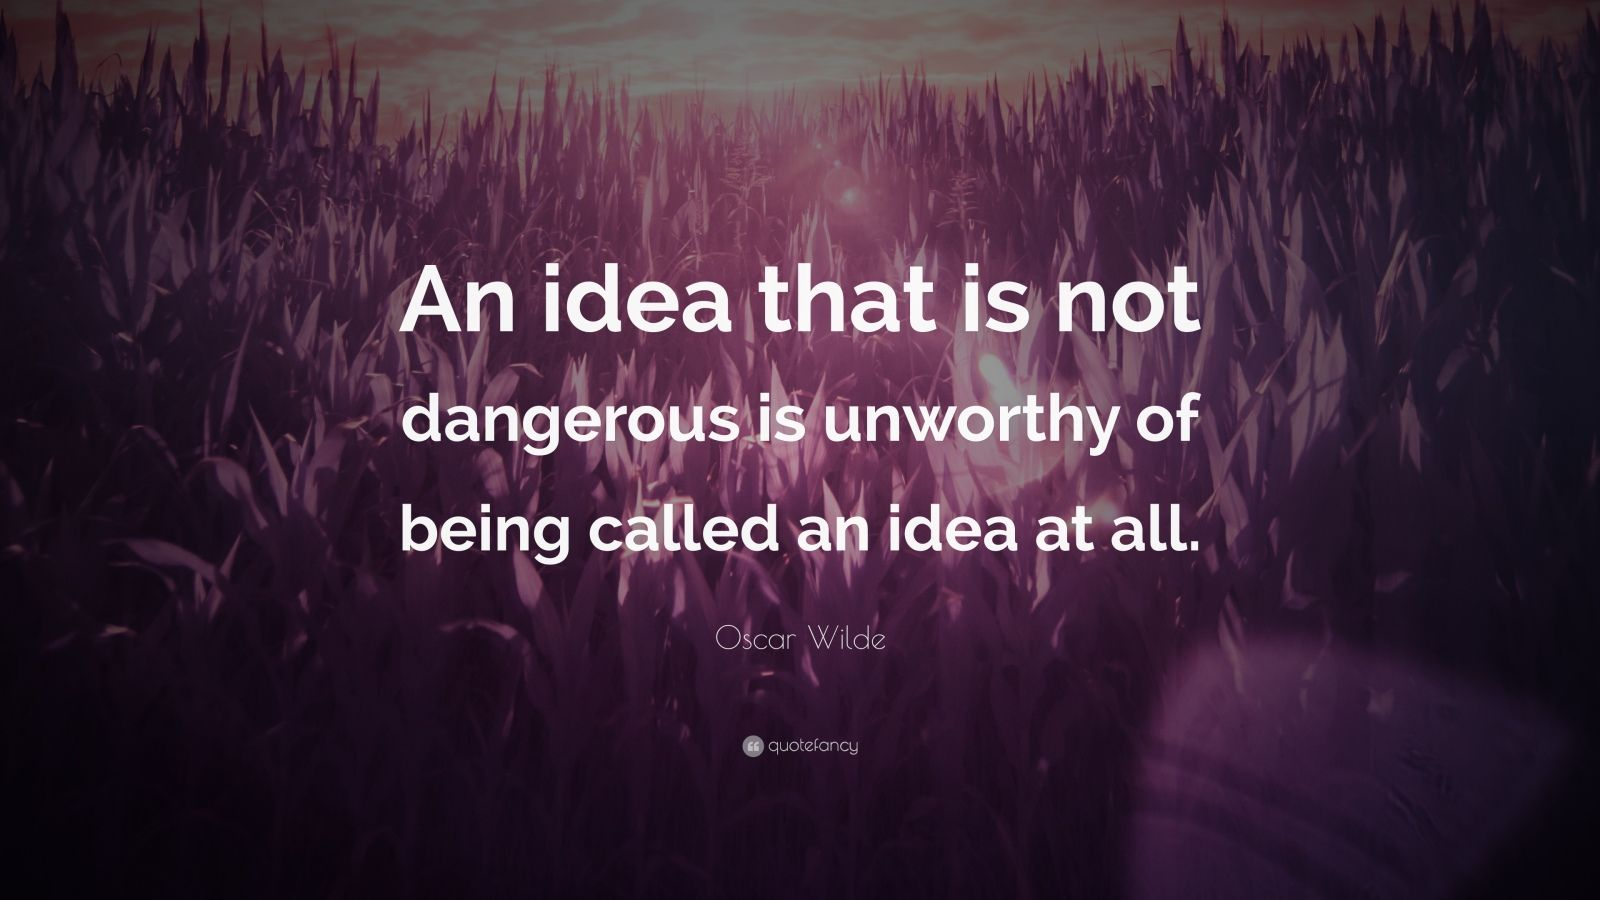 Quotes For Unworthy Friends : Oscar wilde quote an idea that is not dangerous